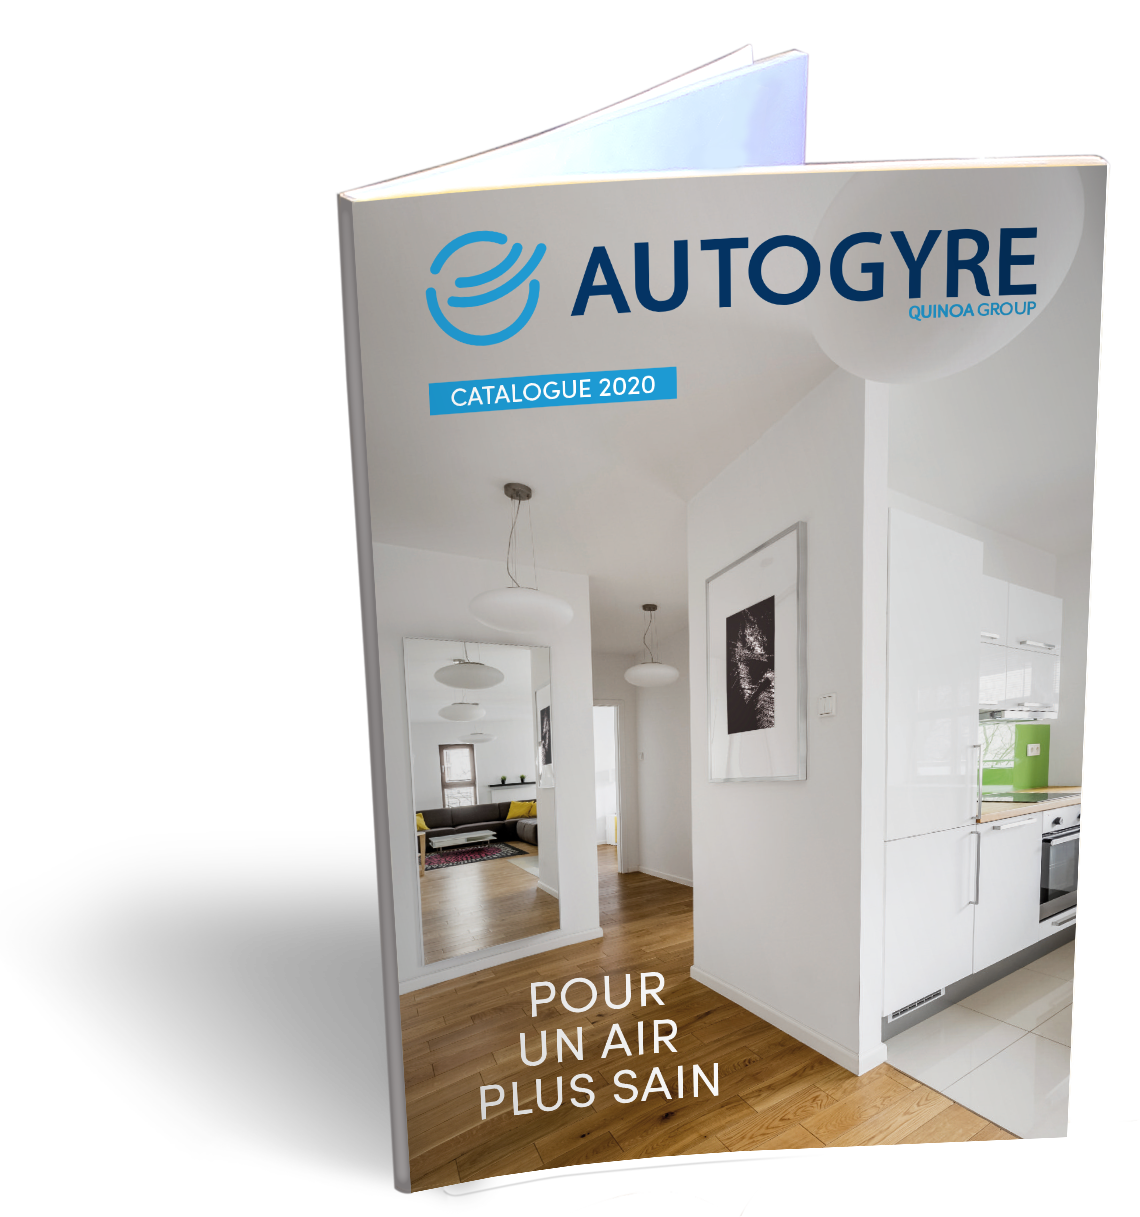 catalogue-autogyre-2020